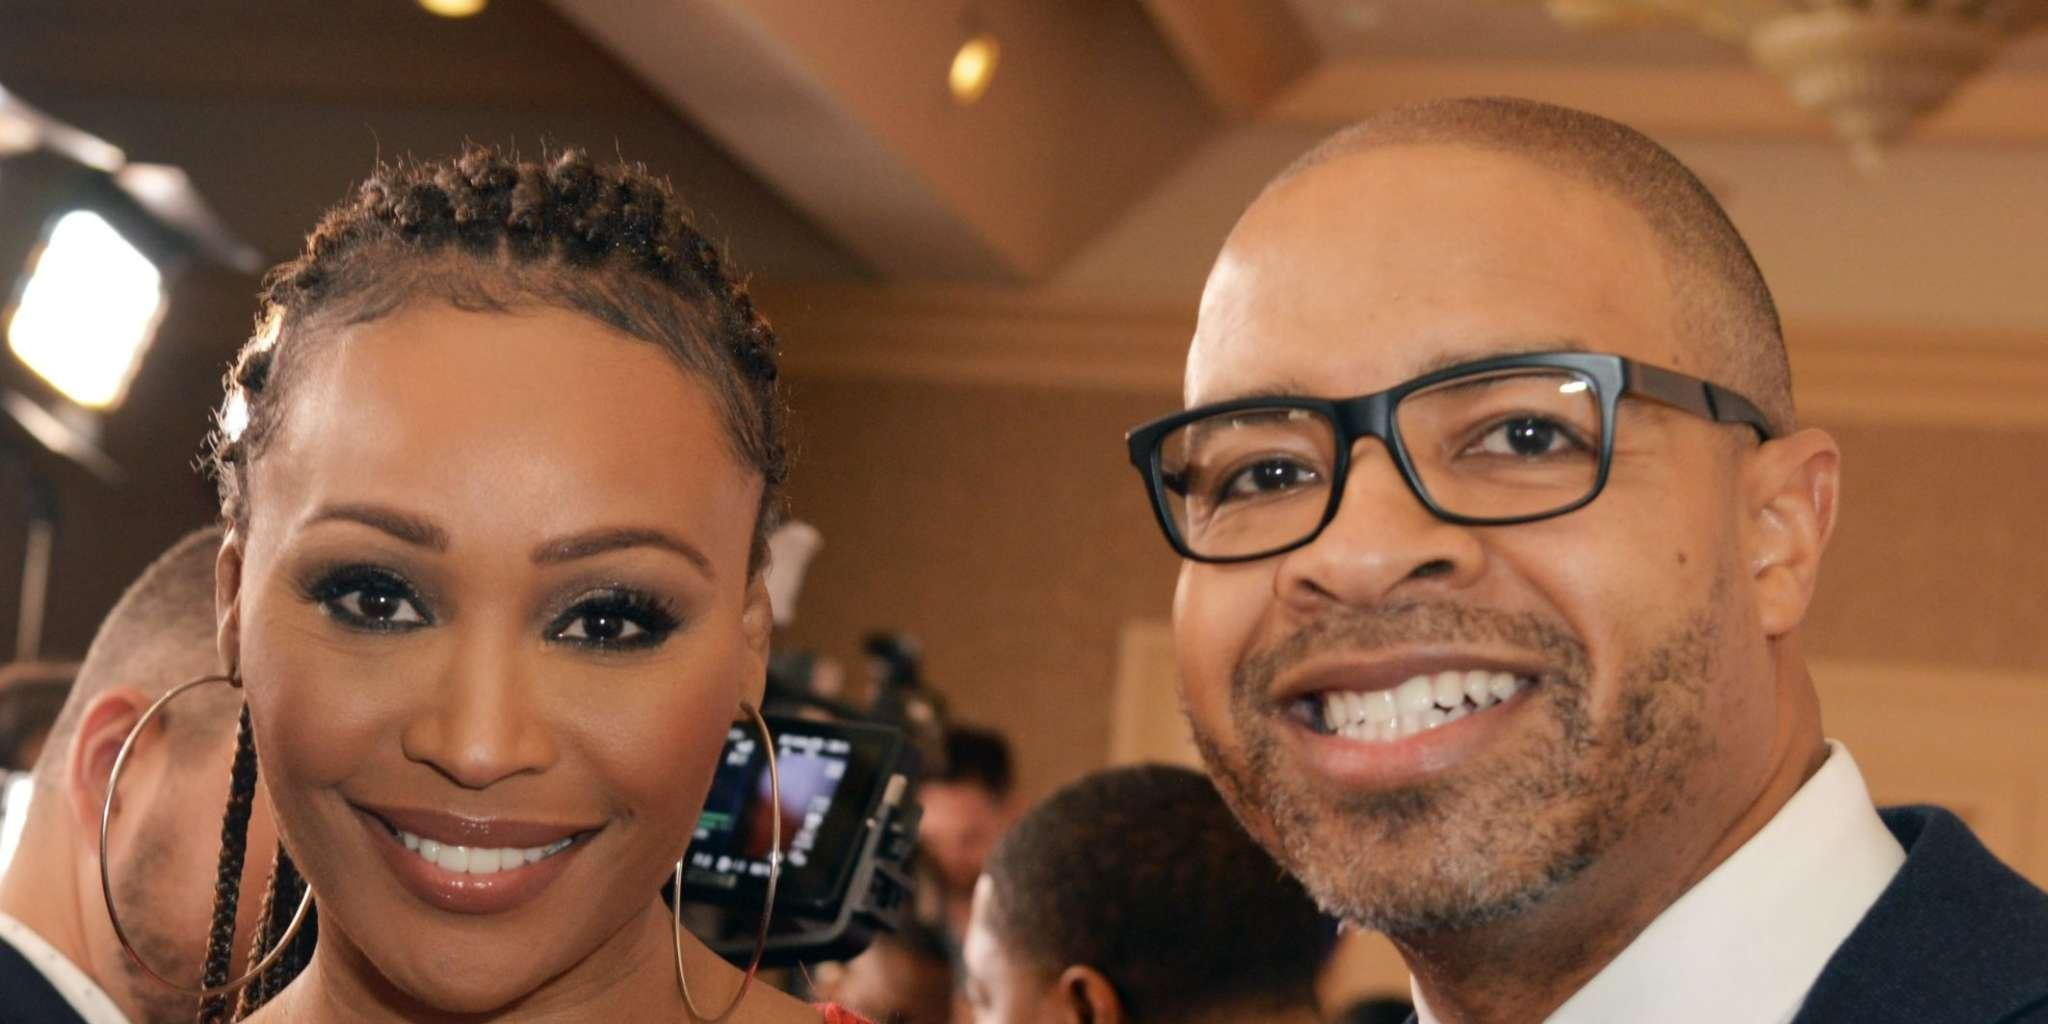 Cynthia Bailey Shares An Impressive Video Dedicated To First Responders And Essential Workers